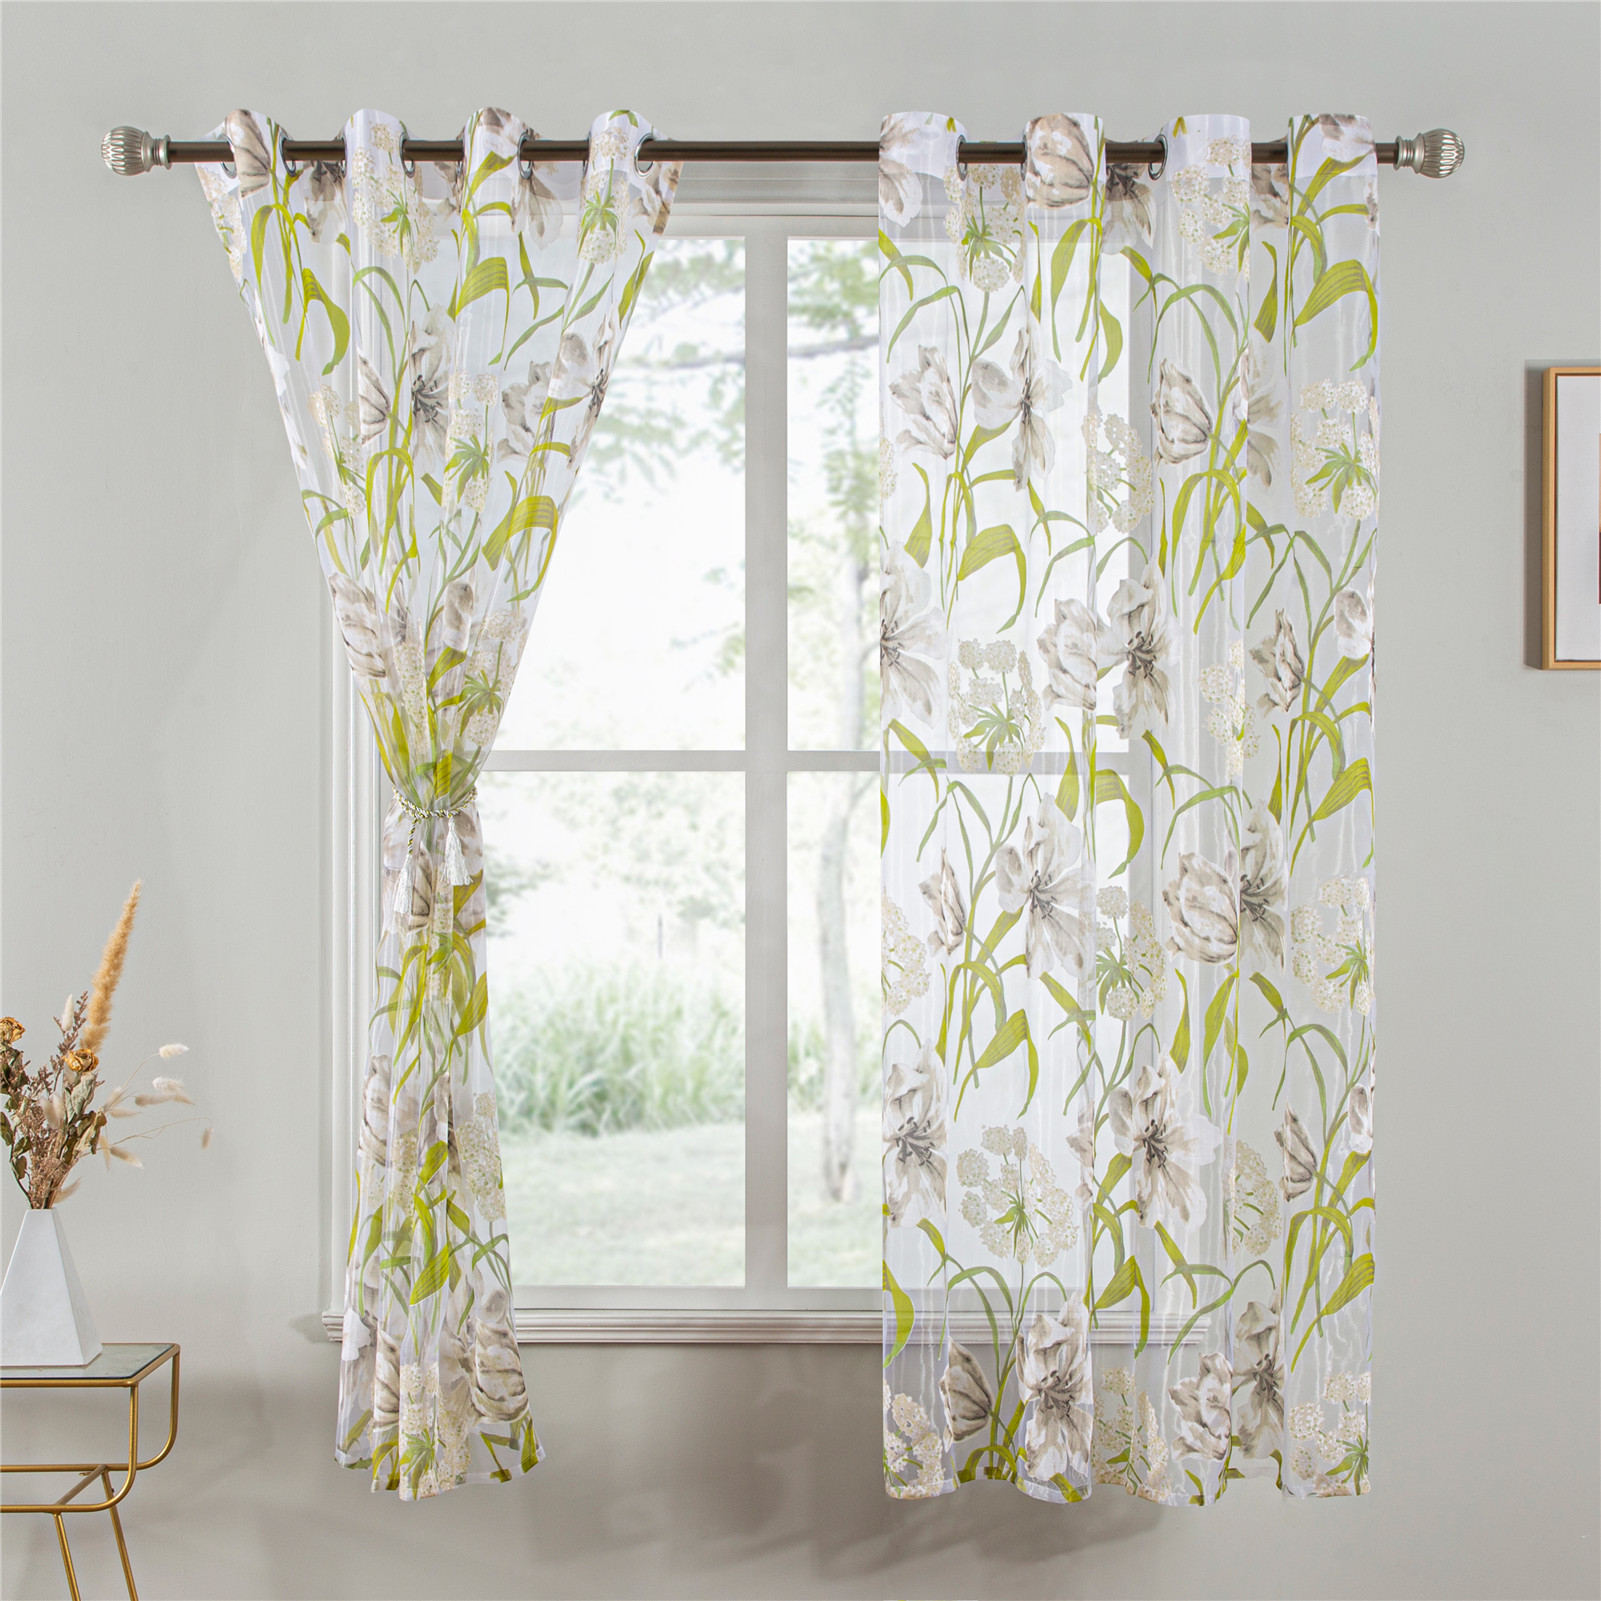 Sheer Curtains Short Tulle Window-Treatment Door-Printed Living-Room Tropical Kitchen